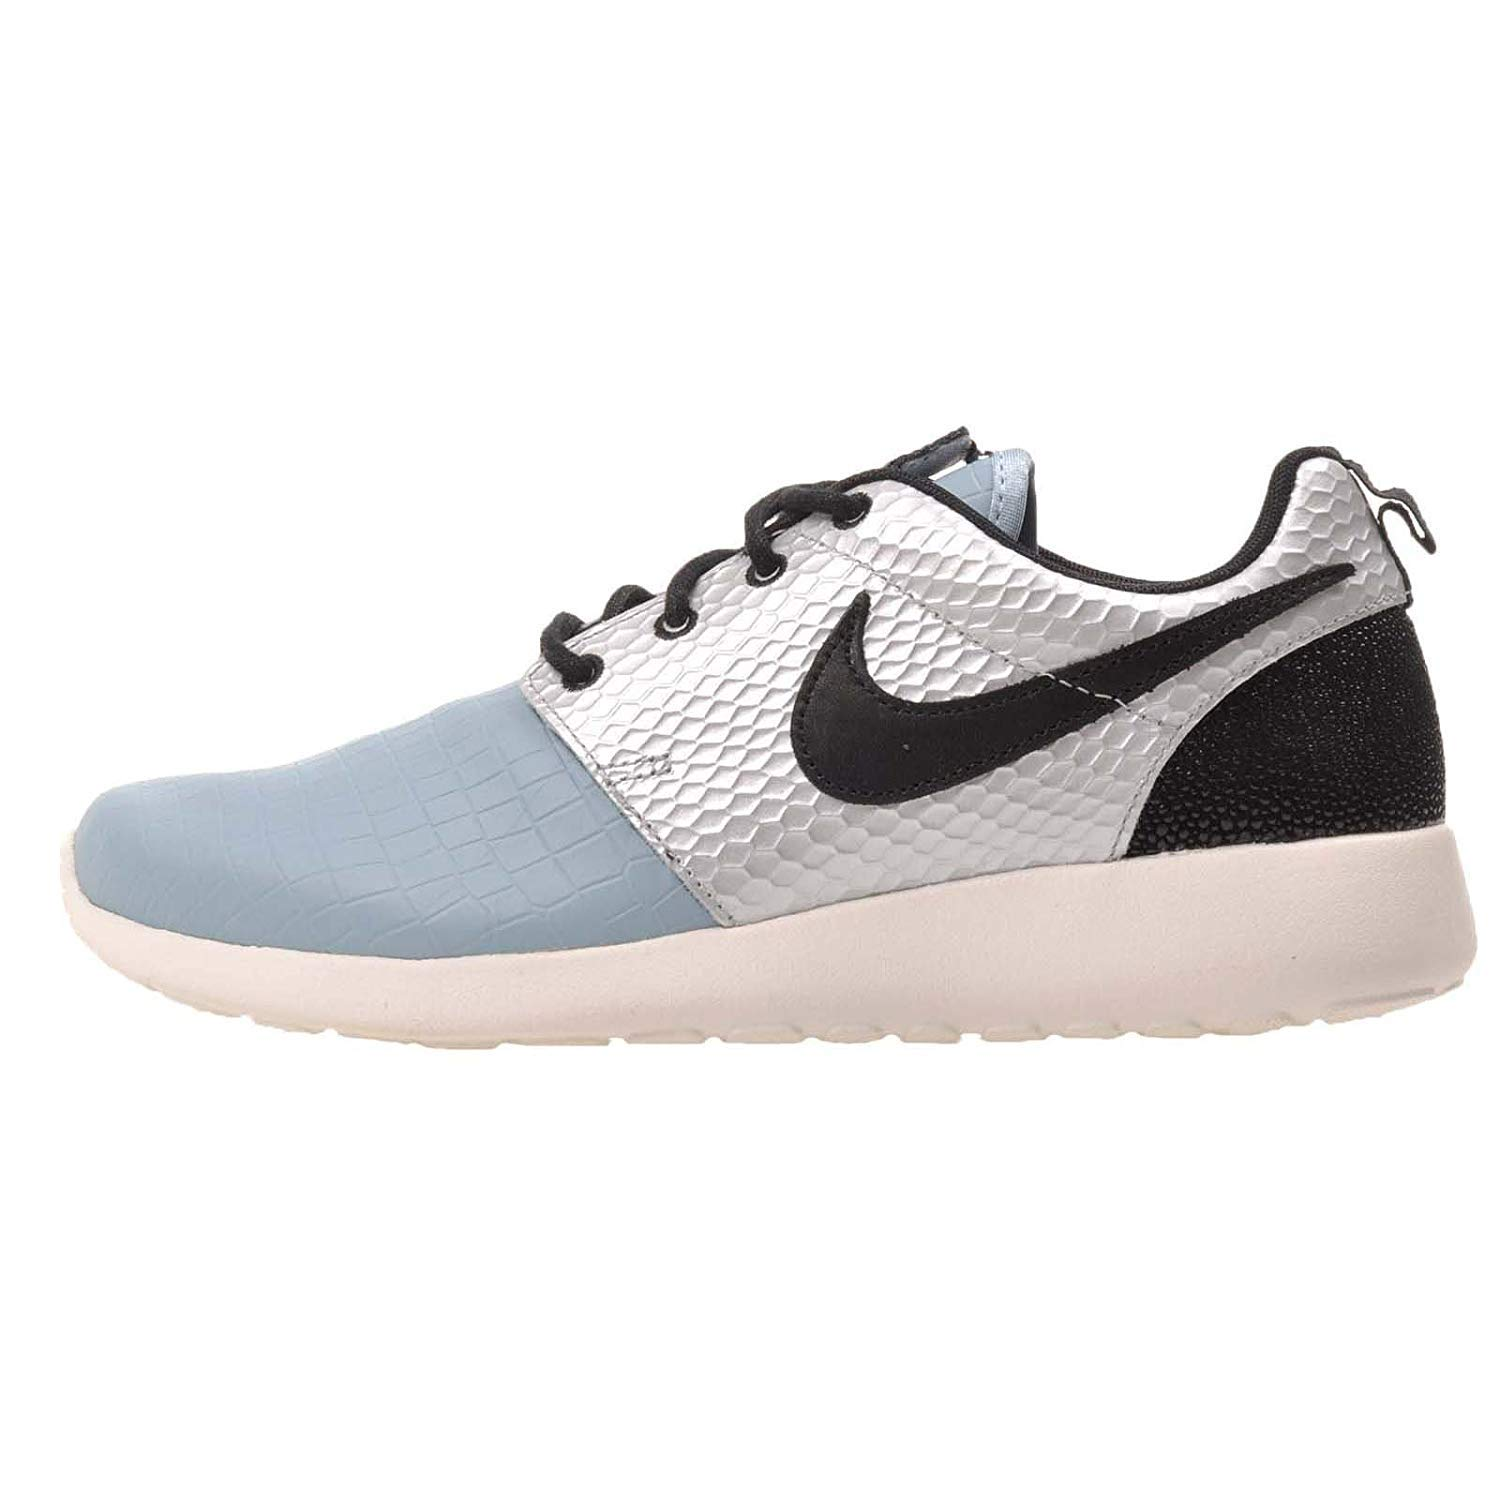 f6465c5754c4 Details about Nike Womens Roshe One LX Low Top Lace Up Running Sneaker